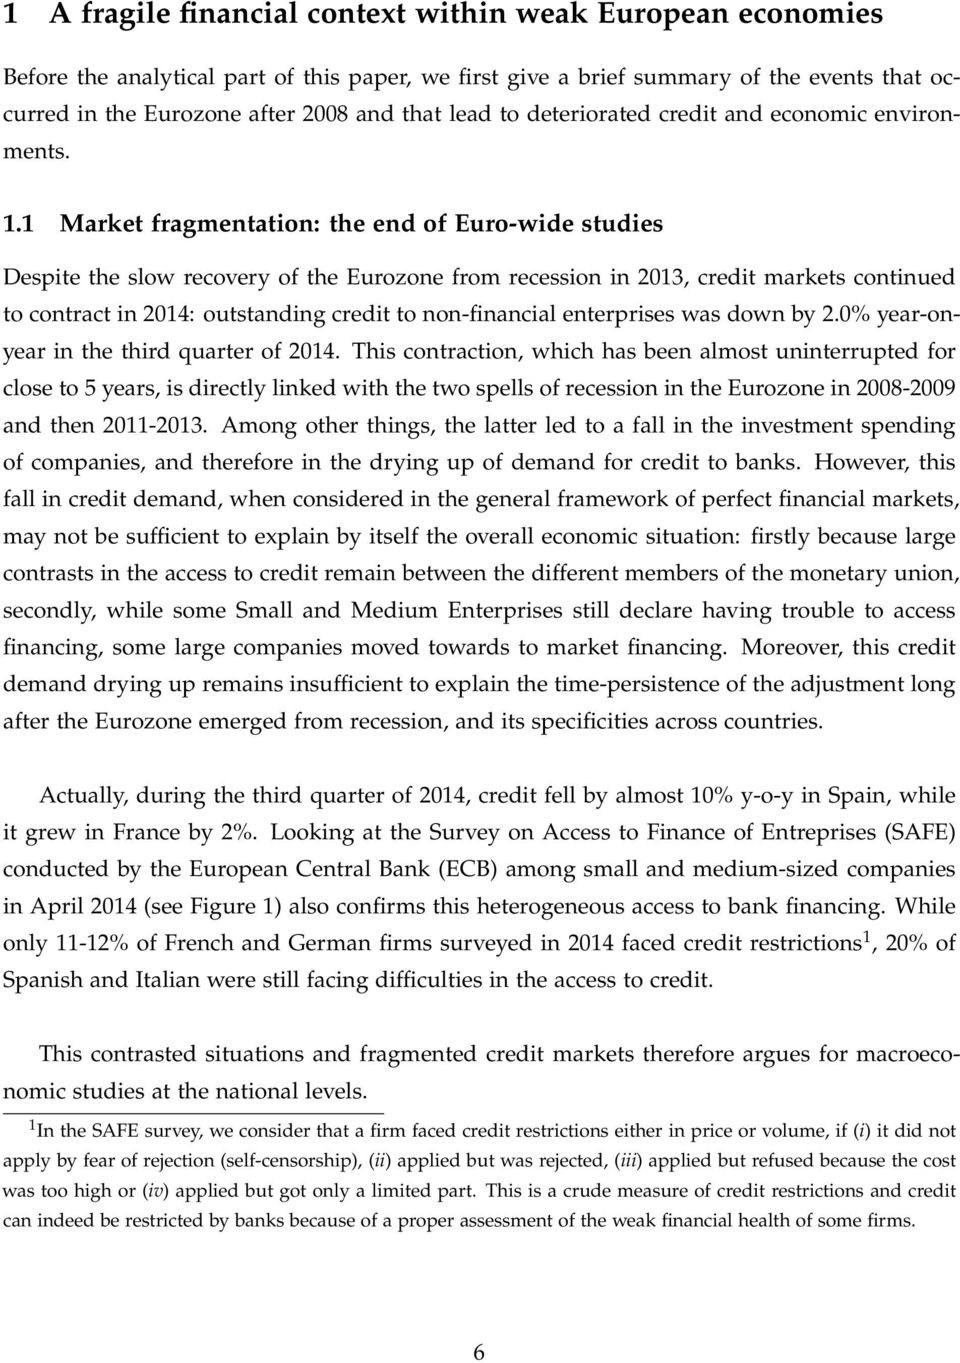 1 Market fragmentation: the end of Euro-wide studies Despite the slow recovery of the Eurozone from recession in 2013, credit markets continued to contract in 2014: outstanding credit to